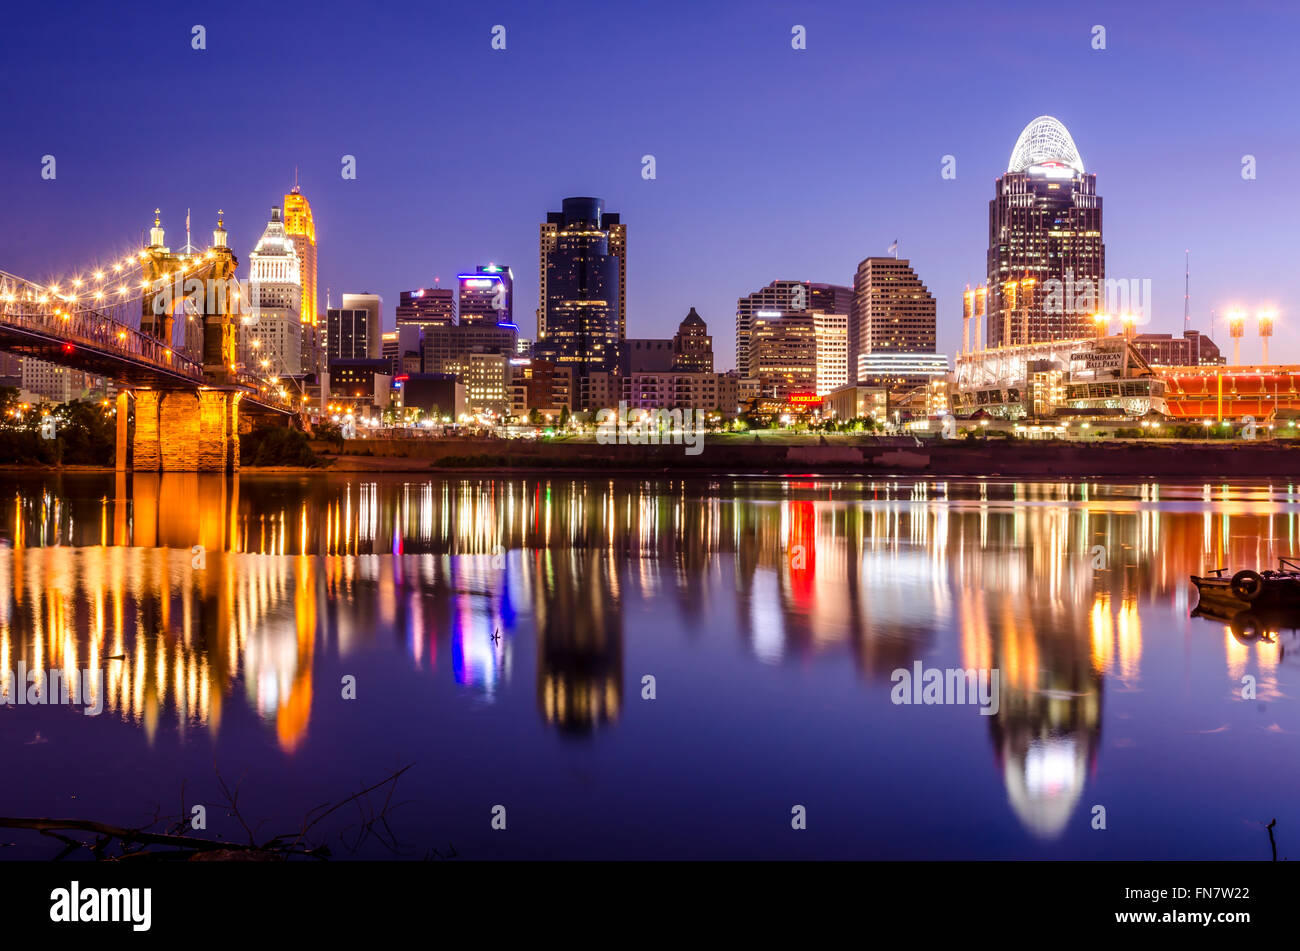 Cincinnati skyline at dawn with reflections from the building in the River Ohio - Stock Image